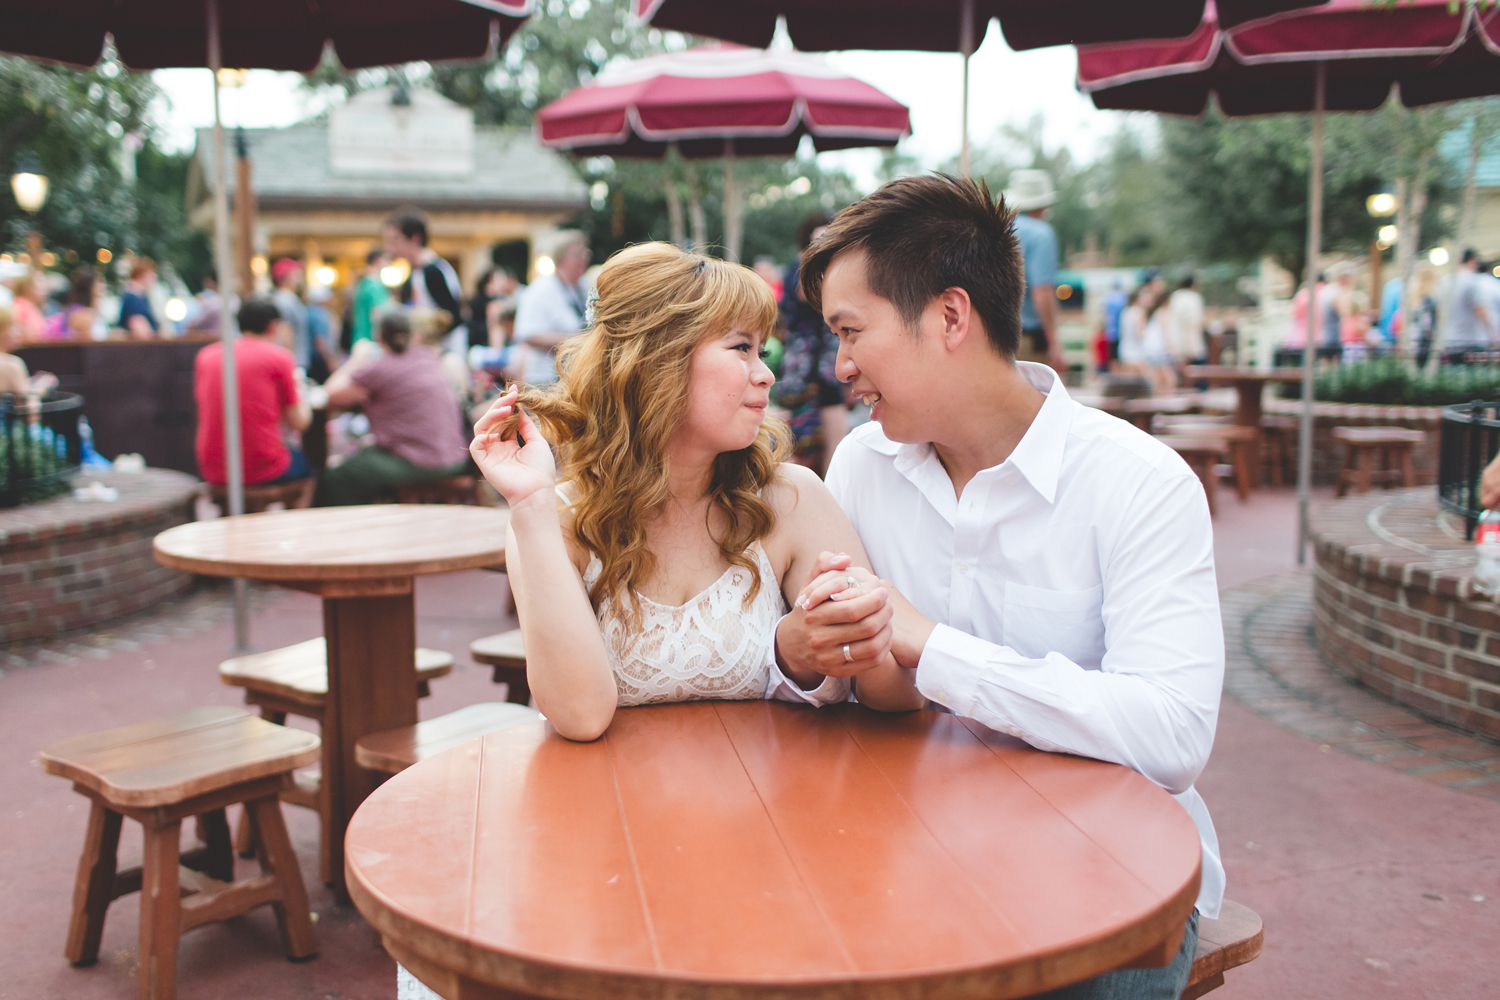 Disney Honeymoon session - Disney Engagement Photos - Disney Wedding Photographer - Destination Orlando Wedding Photographer - Jaime DiOrio (75).jpg